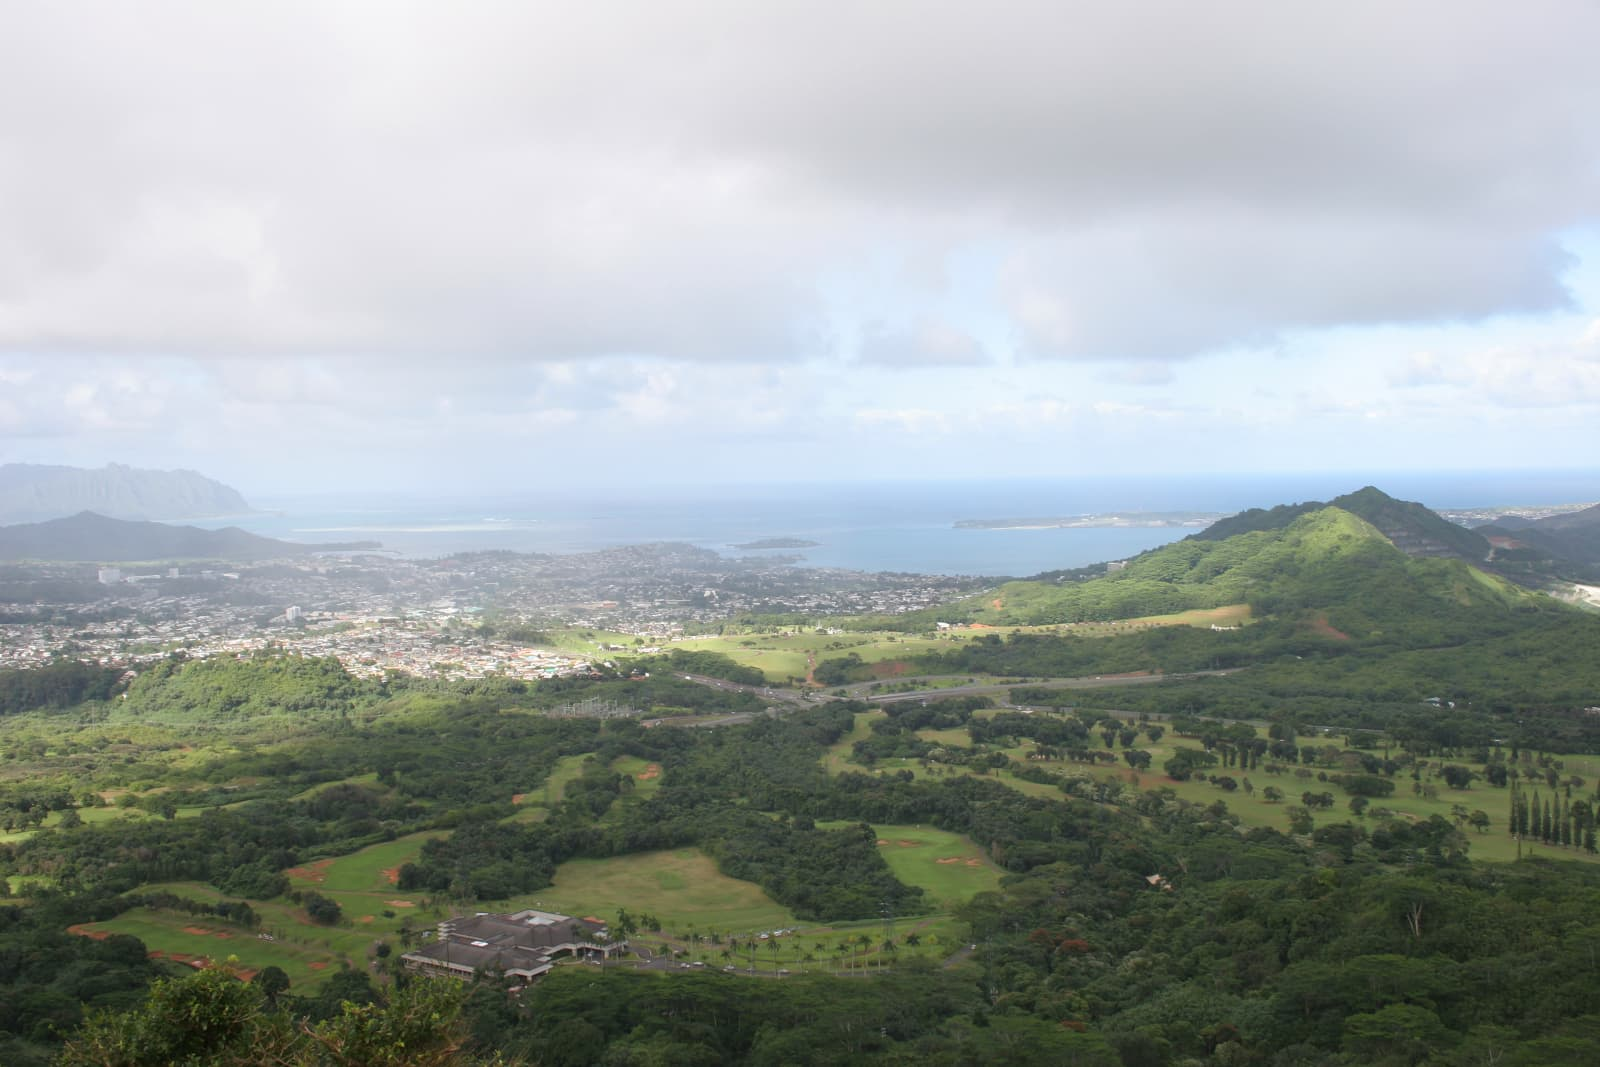 Looking over Kailua